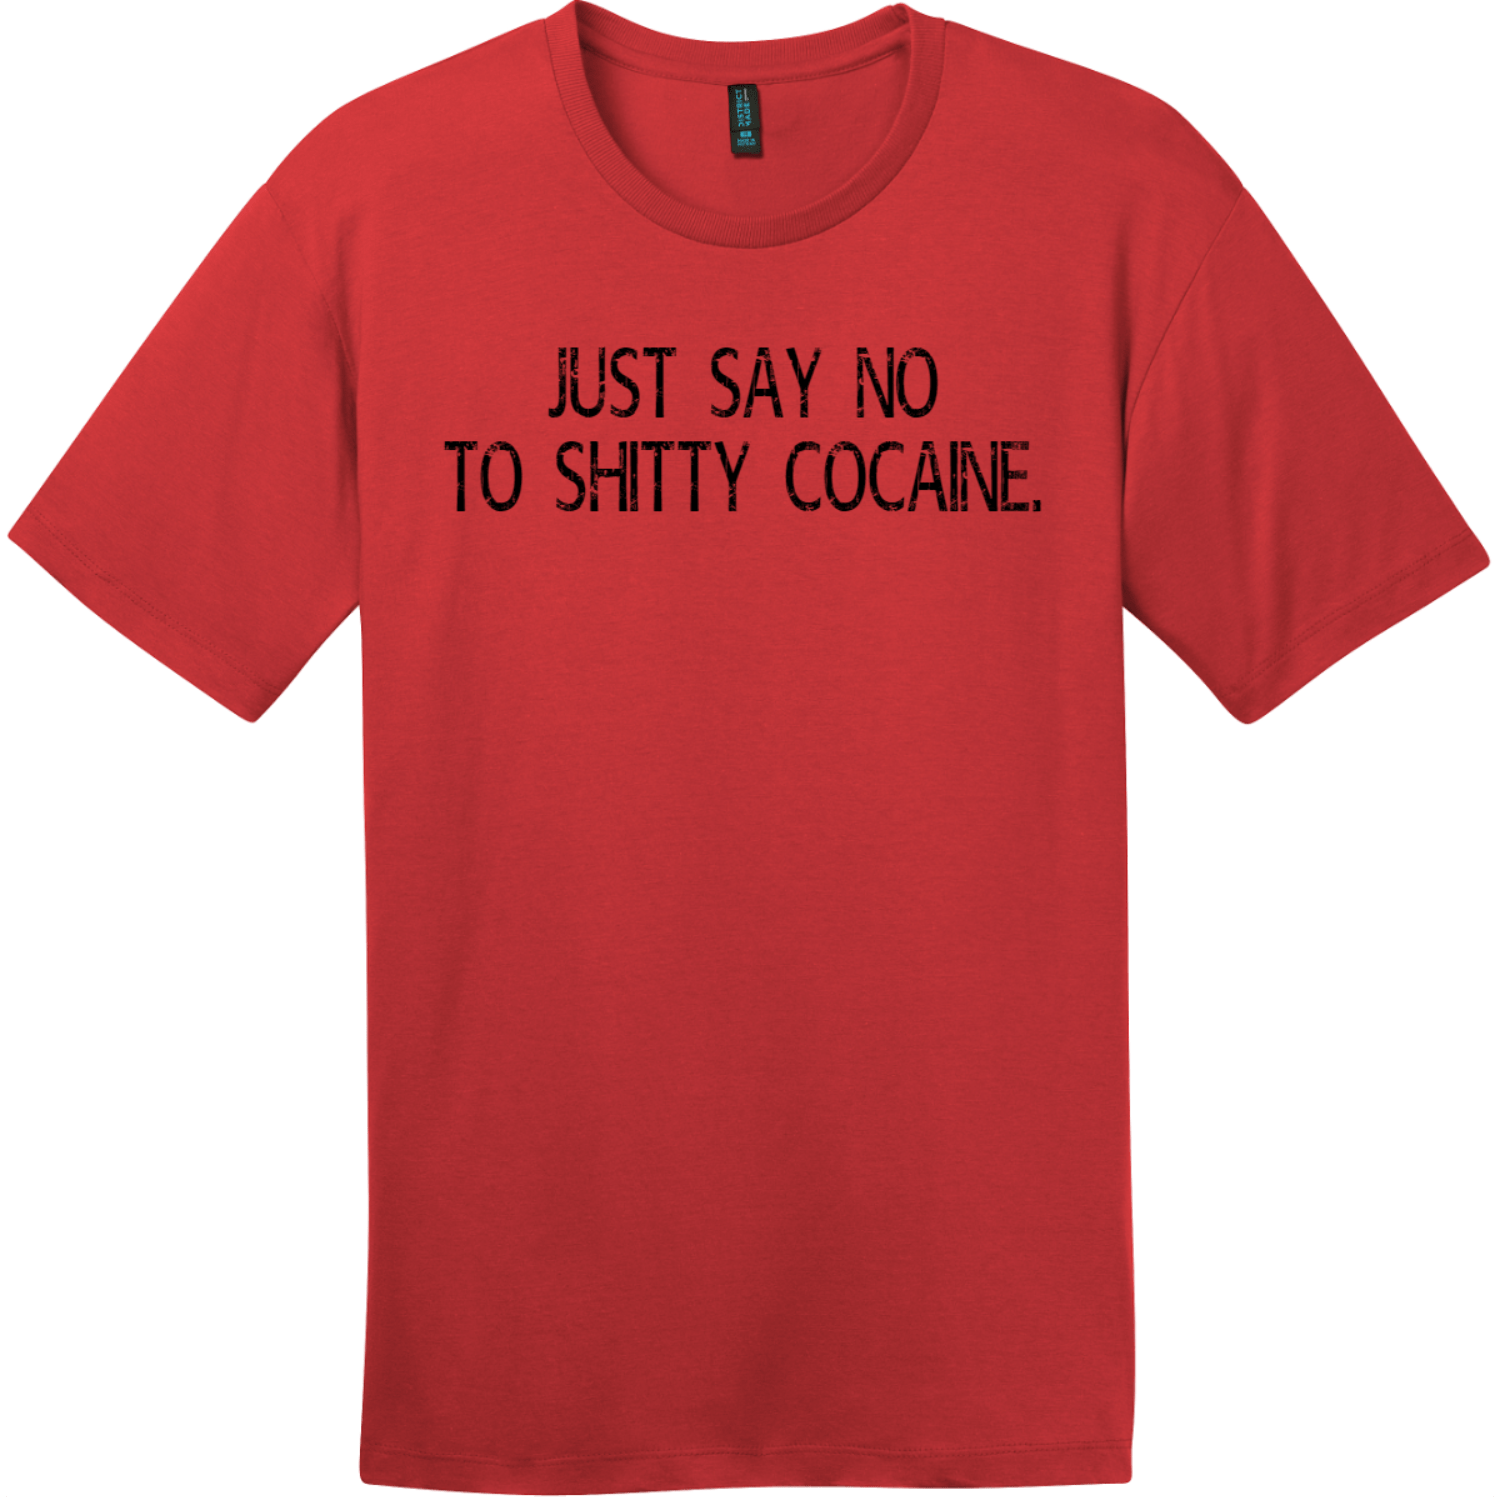 Just Say No To Shitty Cocaine T-Shirt Classic Red District Perfect Weight Tee DT104